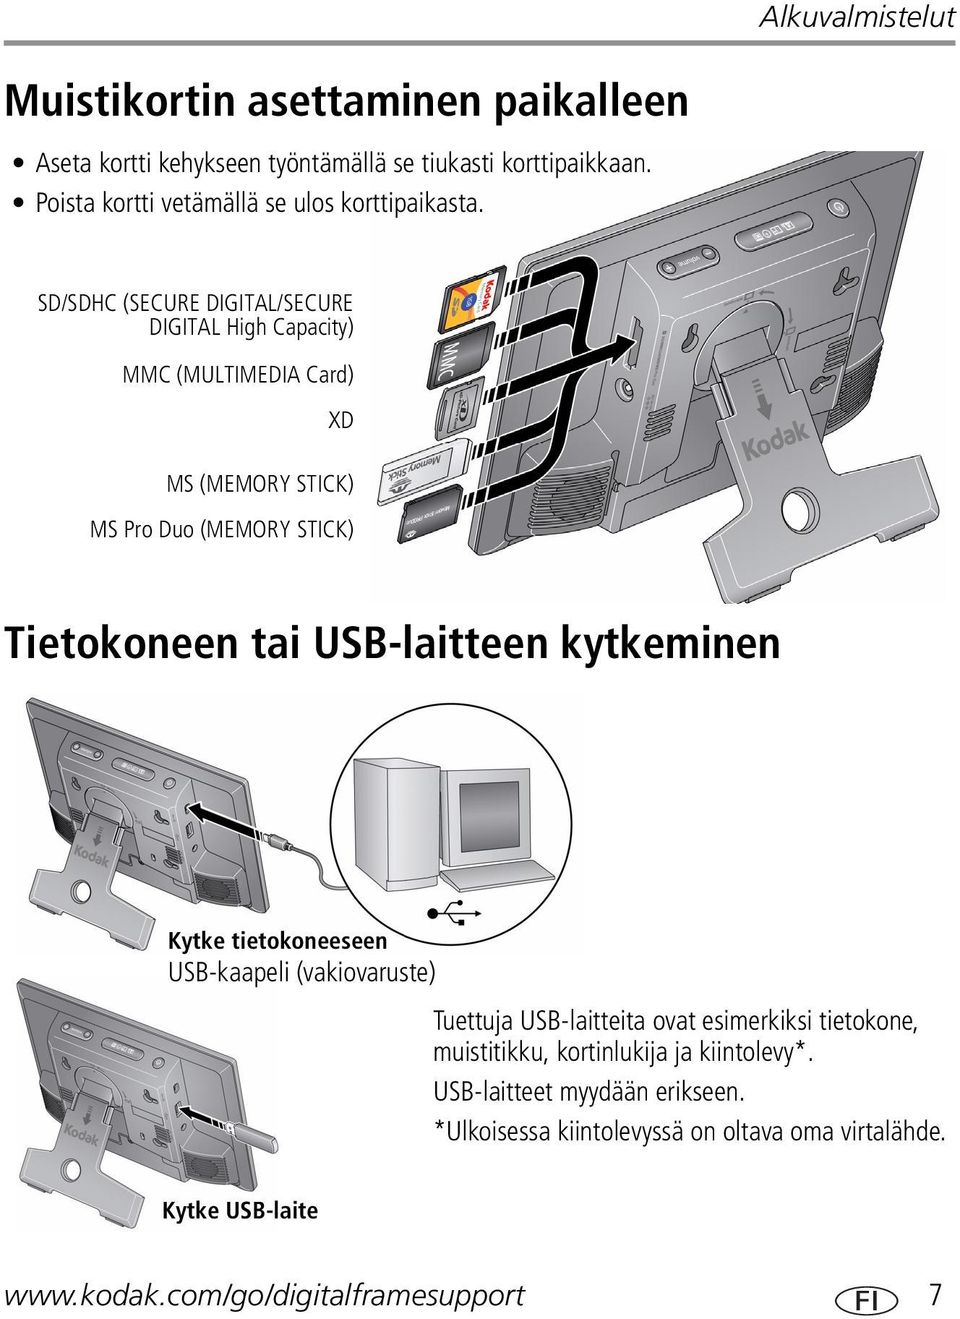 SD/SDHC (SECURE DIGITAL/SECURE DIGITAL High Capacity) MMC (MULTIMEDIA Card) XD MS (MEMORY STICK) MS Pro Duo (MEMORY STICK) Tietokoneen tai USB-laitteen